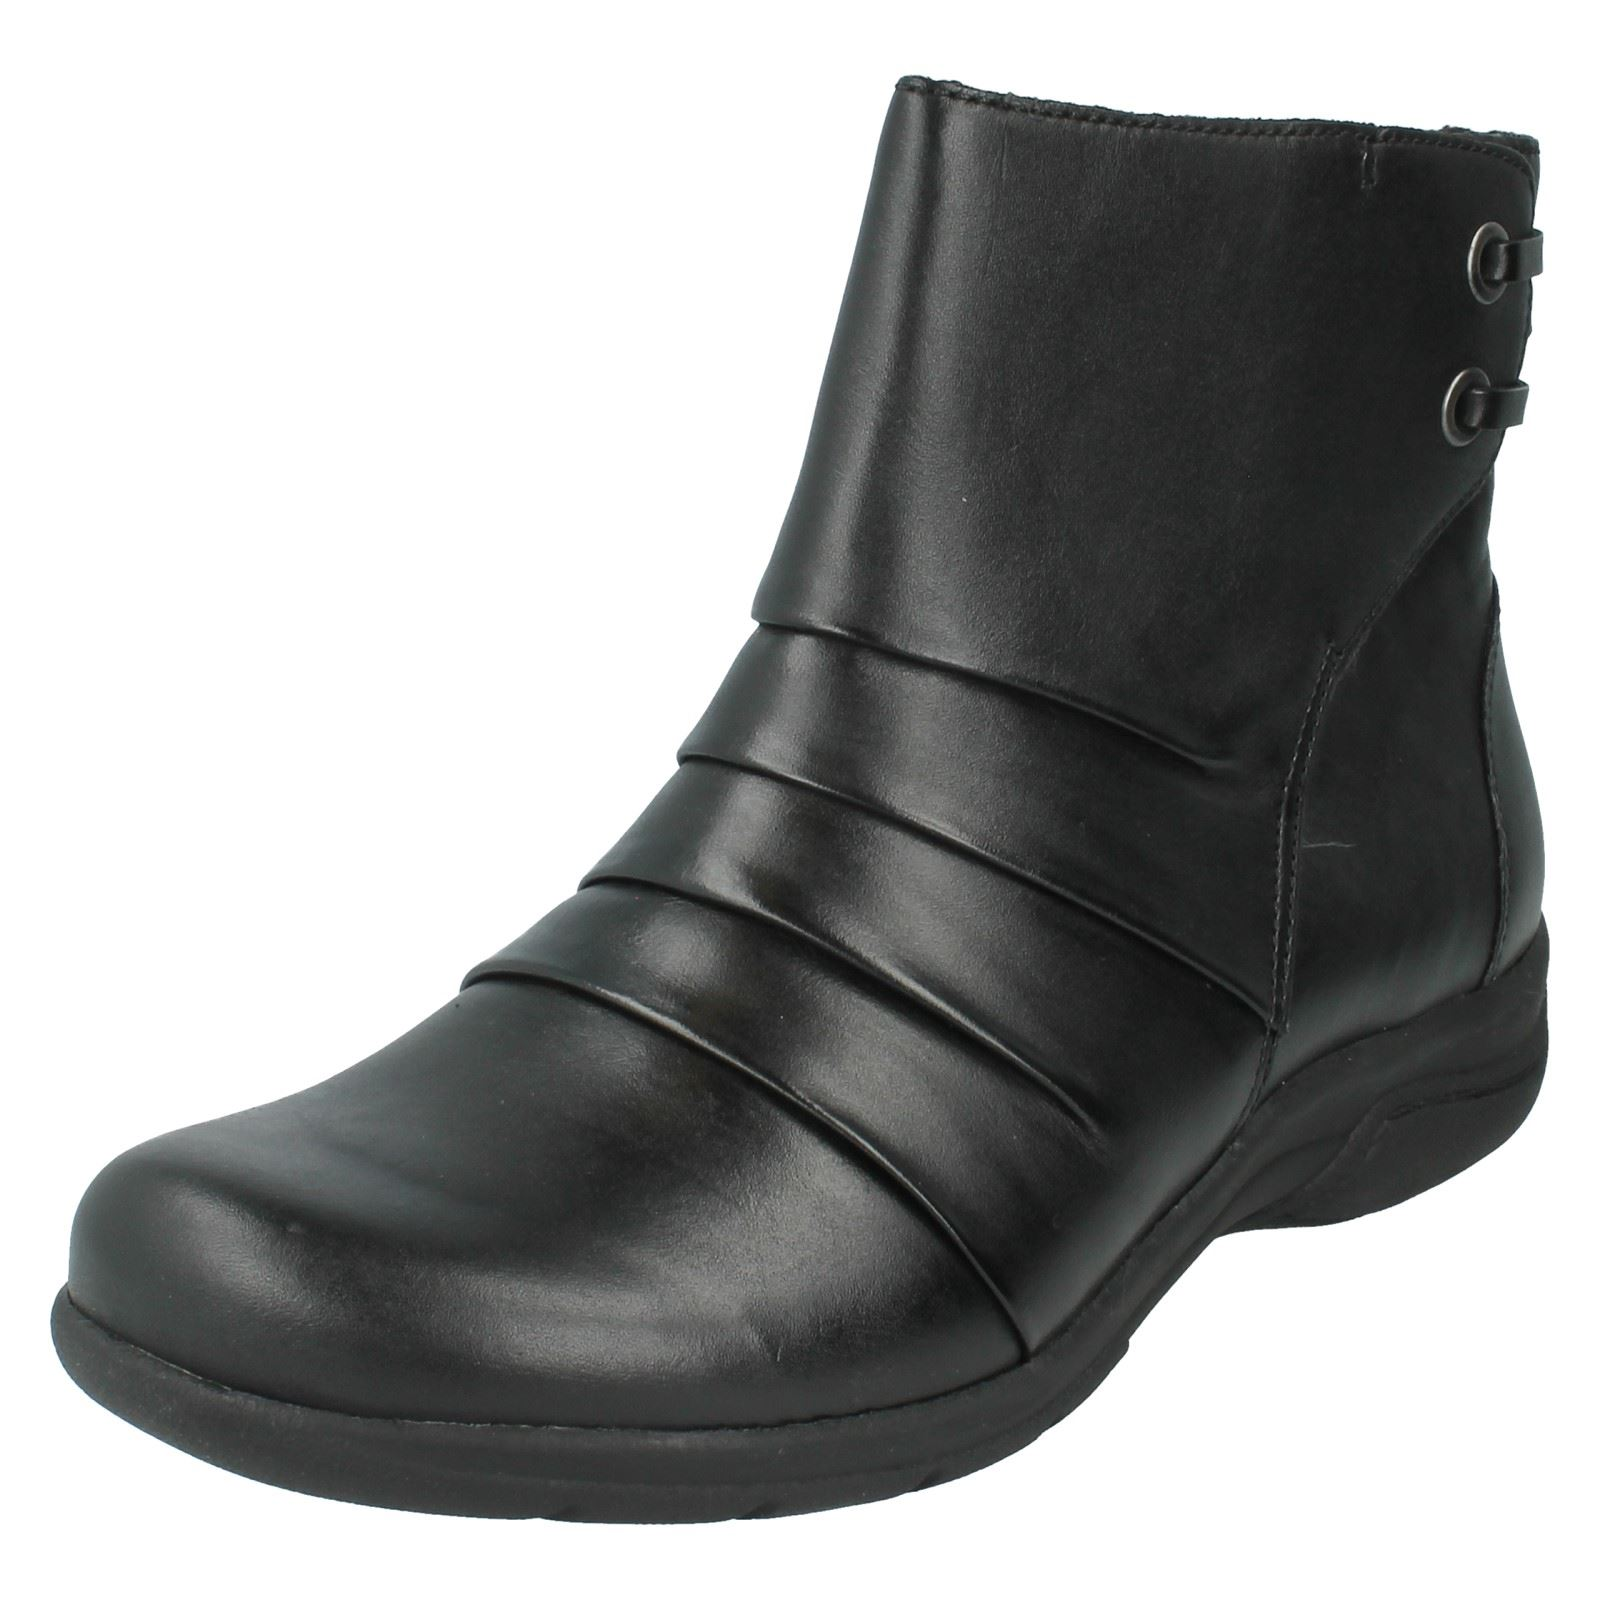 Ladies Clarks Ankle Boots Style Mells - Mells Style Ruth 08b597